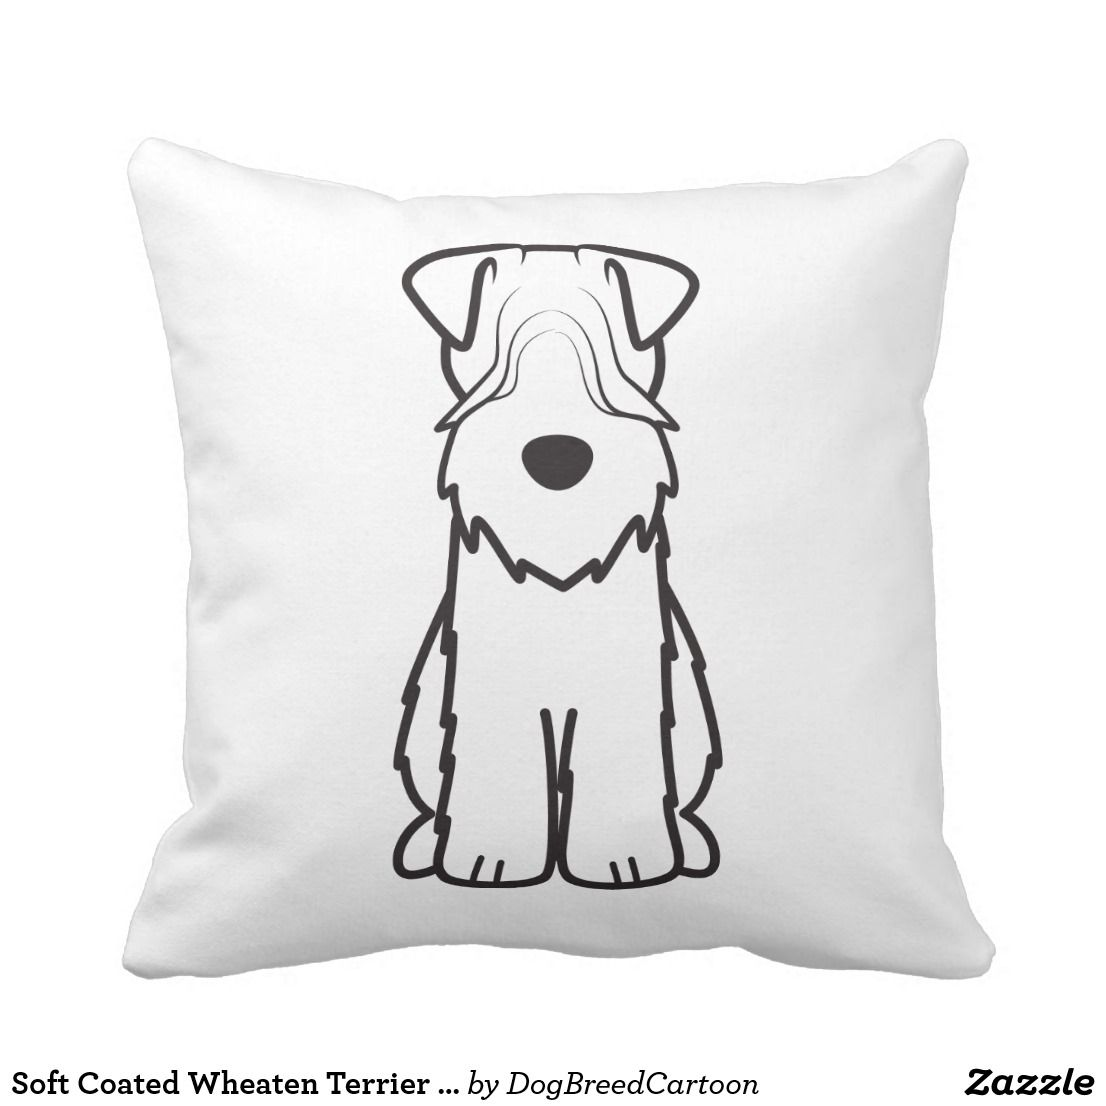 Soft Coated Wheaten Terrier Dog Cartoon Follow the link to see this ...